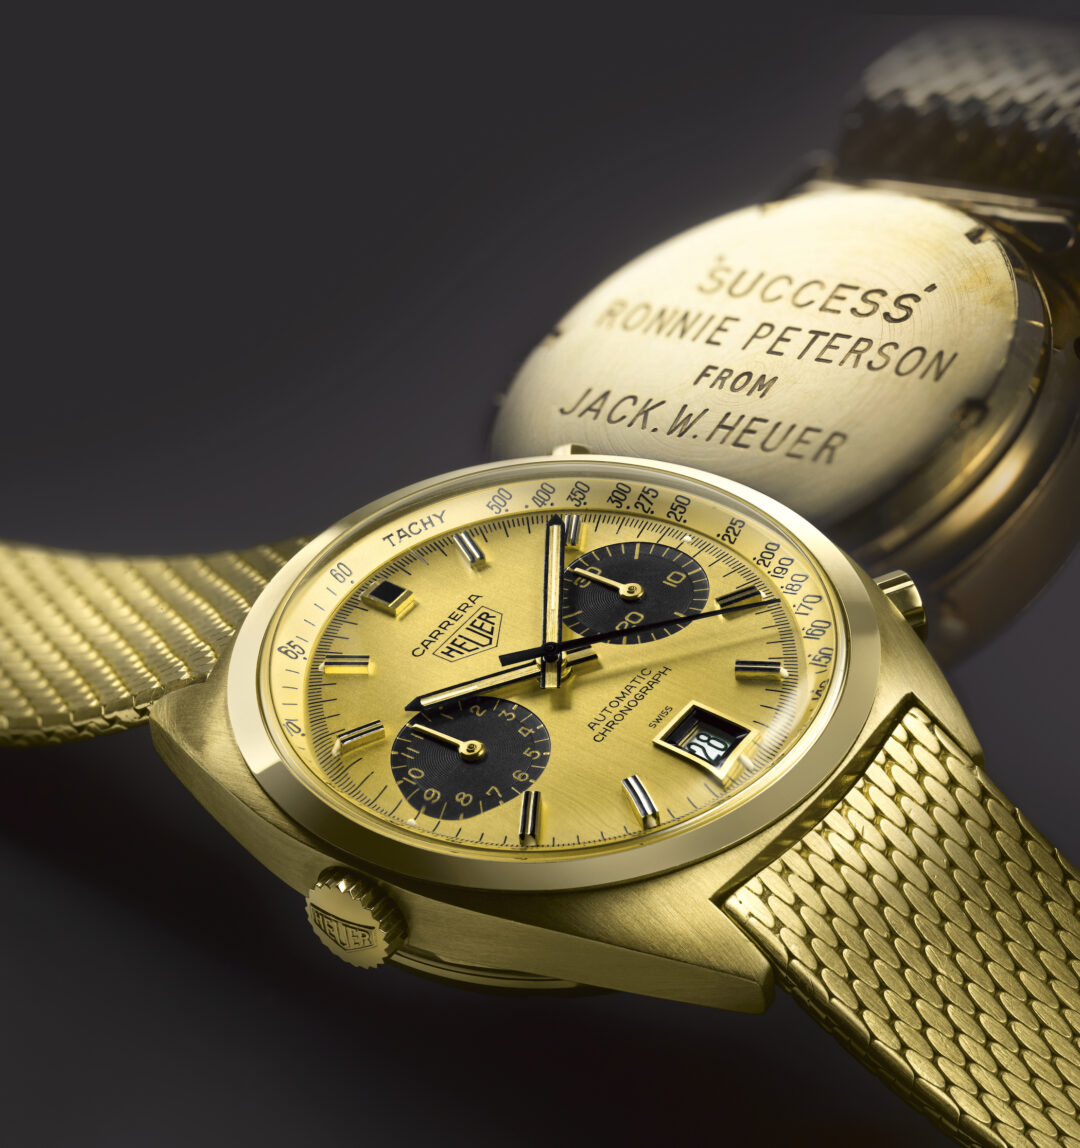 The original 'Heuer Carrera' was sold at auction in May 2016, for a breaking price of 225'000 CHF.Peterson's Heuer is now owned by the TAG Heuer museum